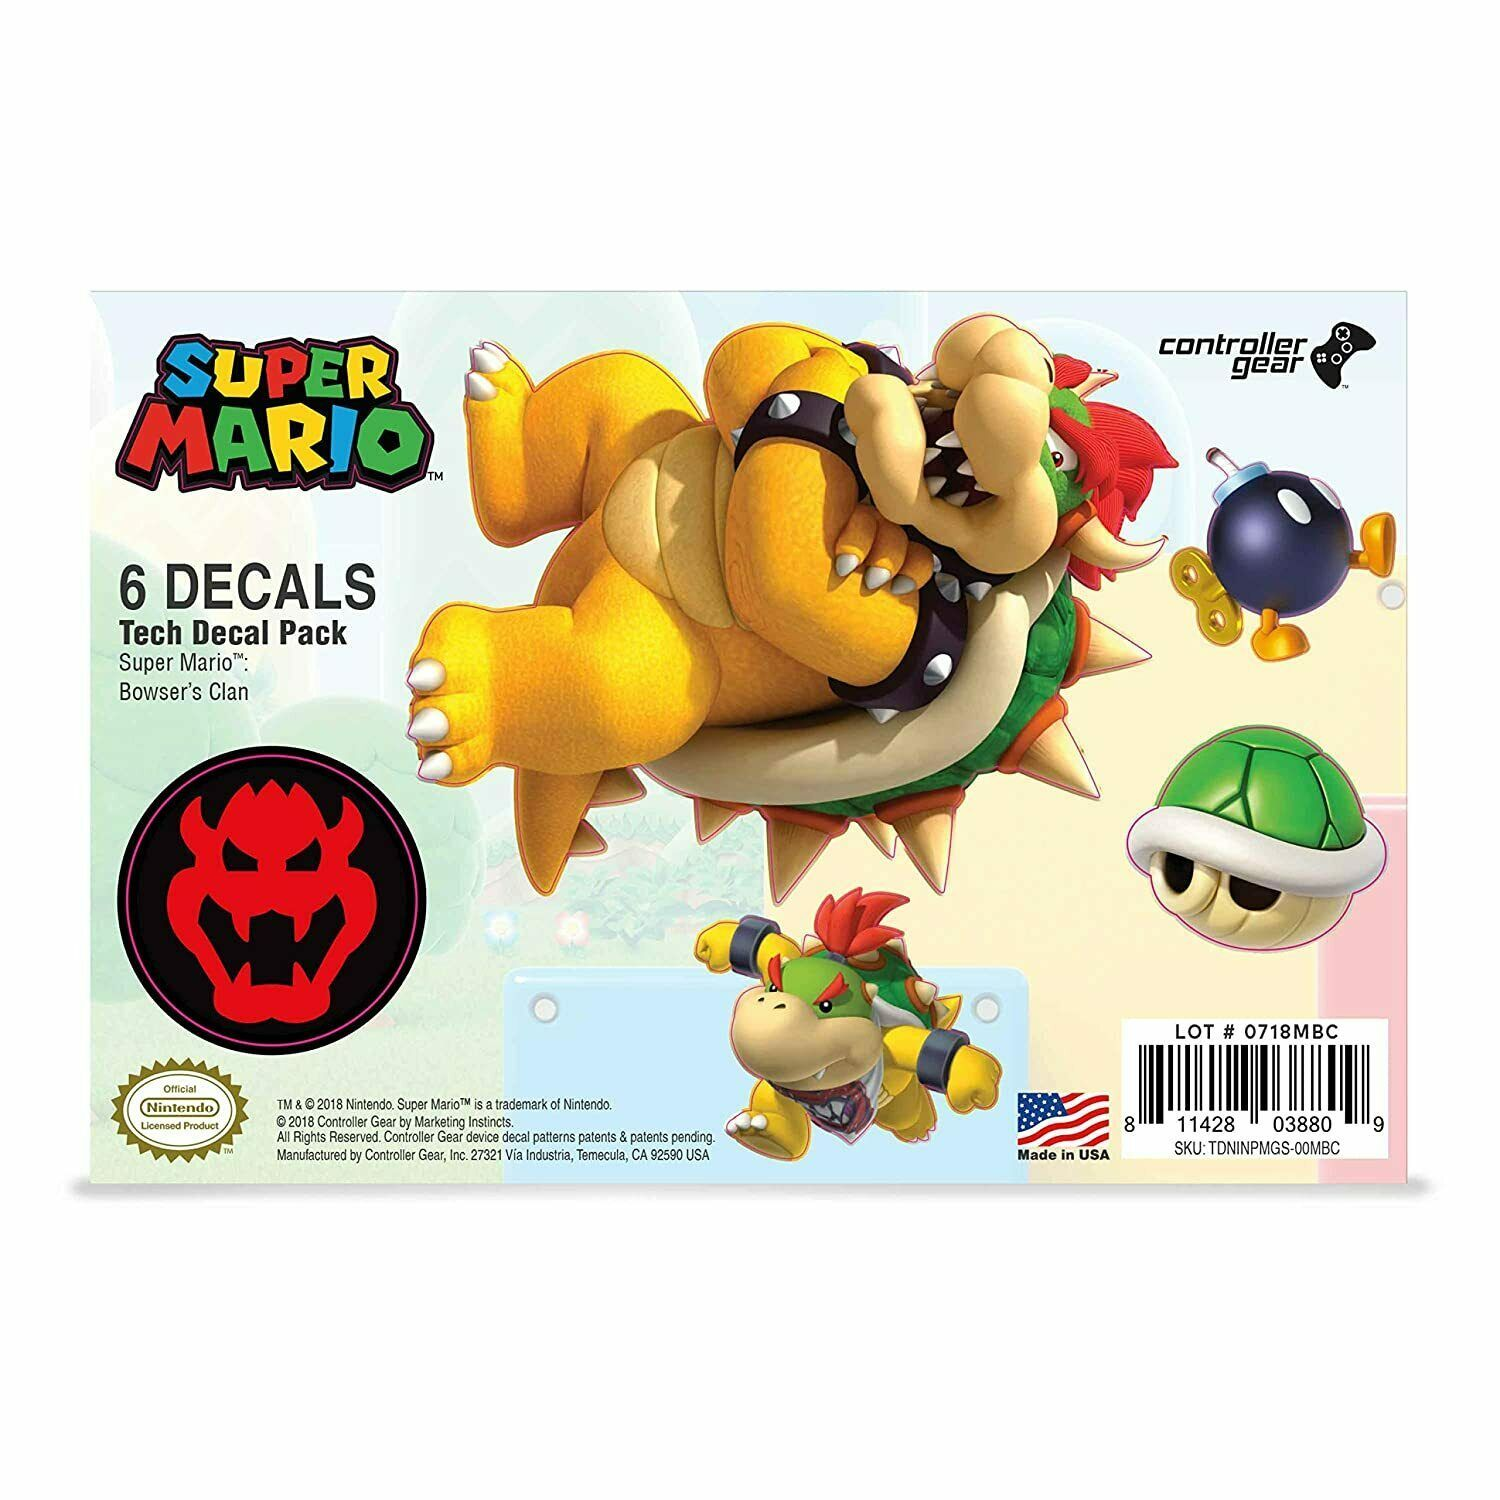 Controller Gear Super Mario Bros. Tech Decals Pack (Set of 6) - Bowser Pack